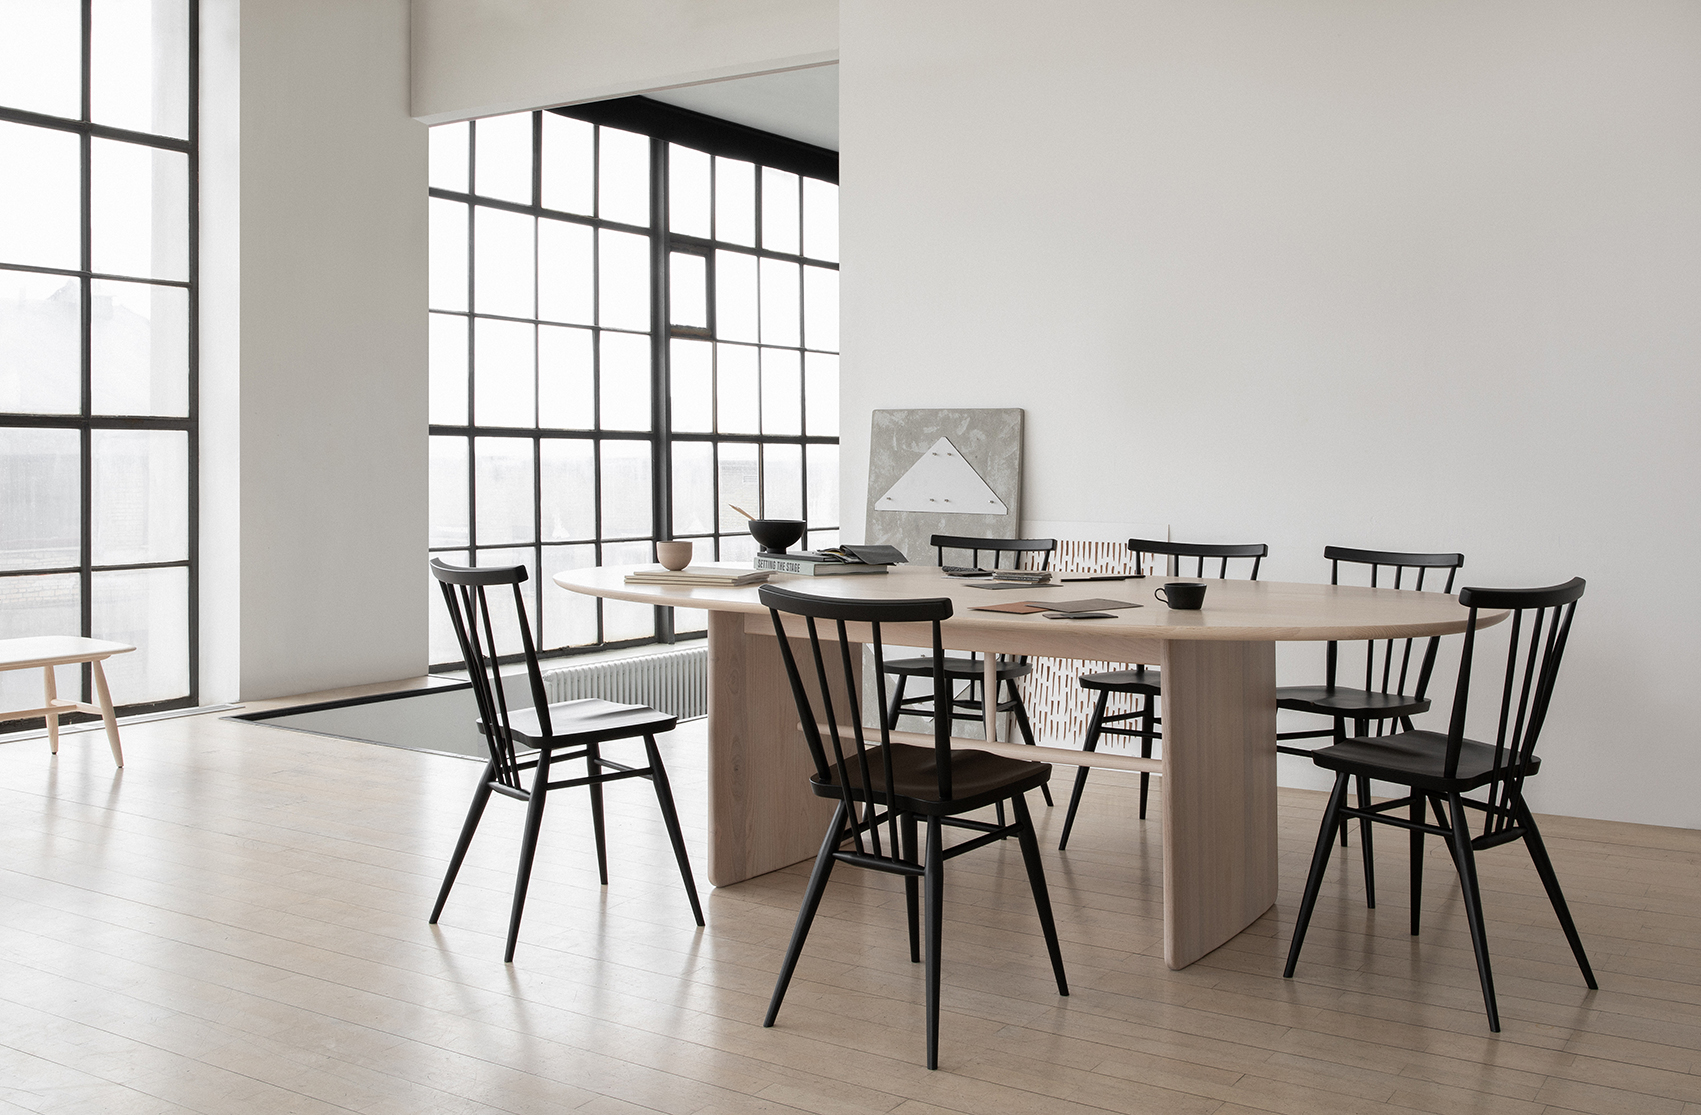 Pennon Large Dining Table - <p>In a modern society filled with distractions, fortunately, you can choose furniture that facilitates your ability to focus and enjoy the company of others. With a dining table that's eye-catching, yet it doesn't upstage you or your dinner. The Large Pennon table by Norm Architects. Where aeroplane wings are echoed in the leg supports and spindles are signature elements in our Ercol designs.</p>